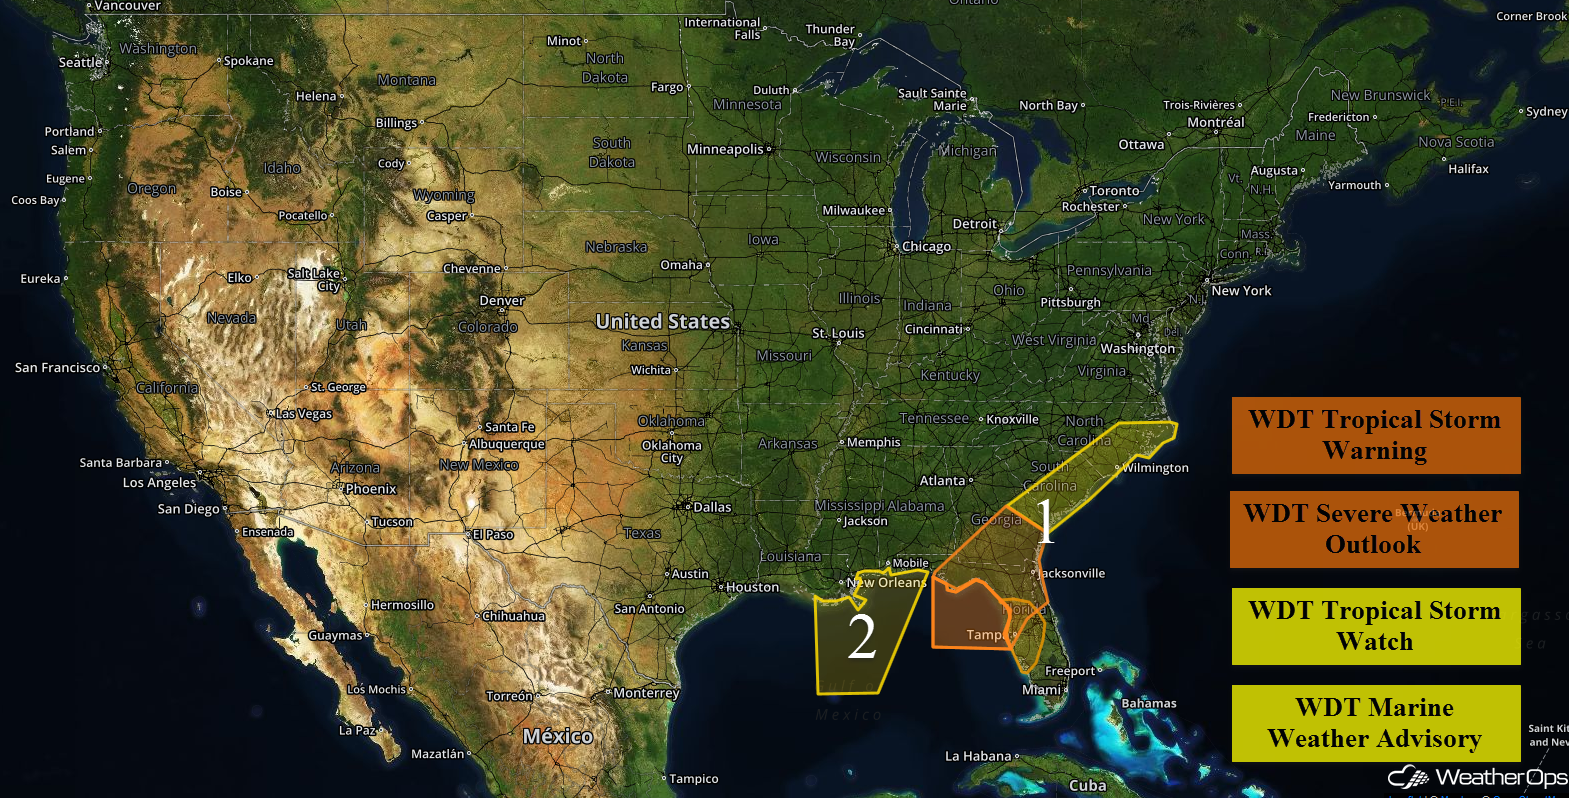 US Hazards for Wednesday, August 31, 2016